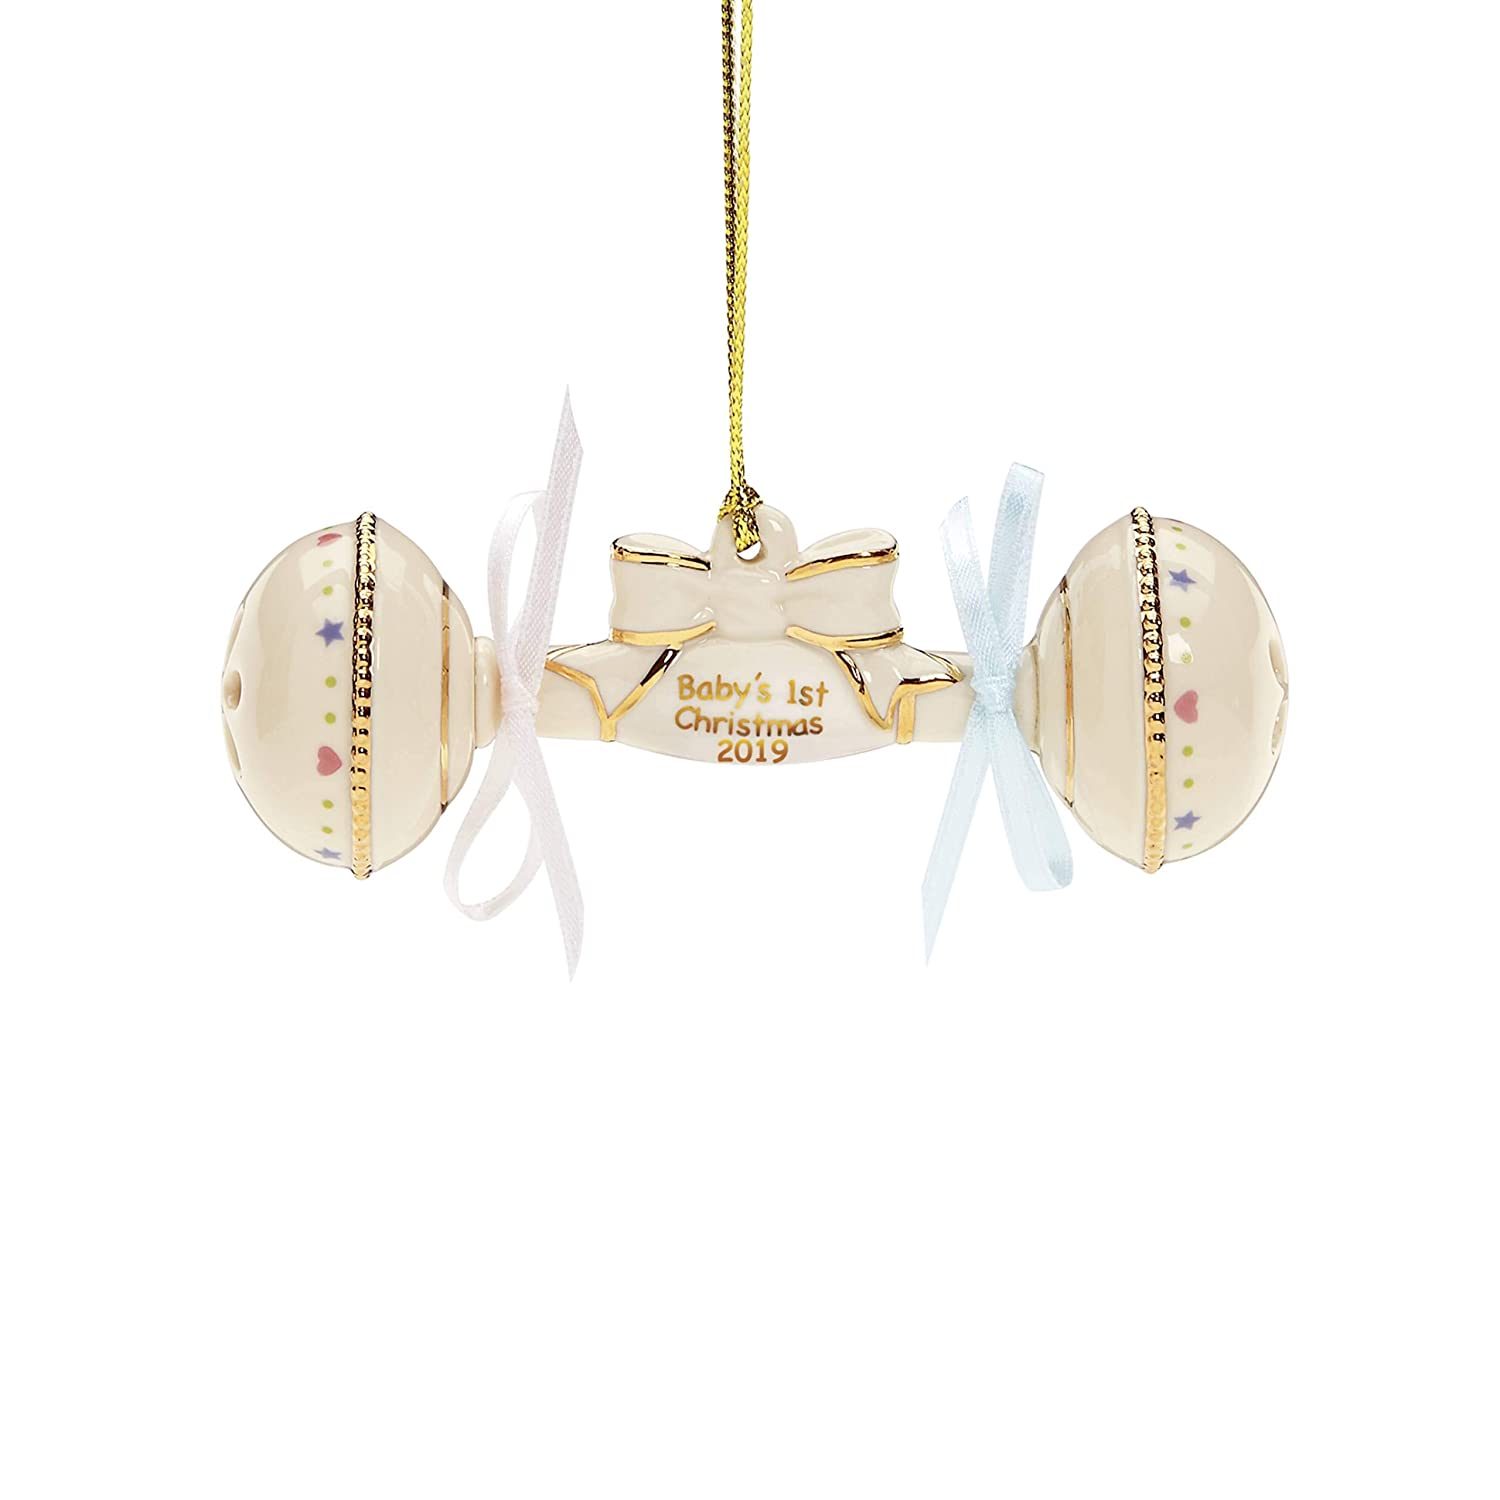 baby's first christmas 2019 rattle ornament